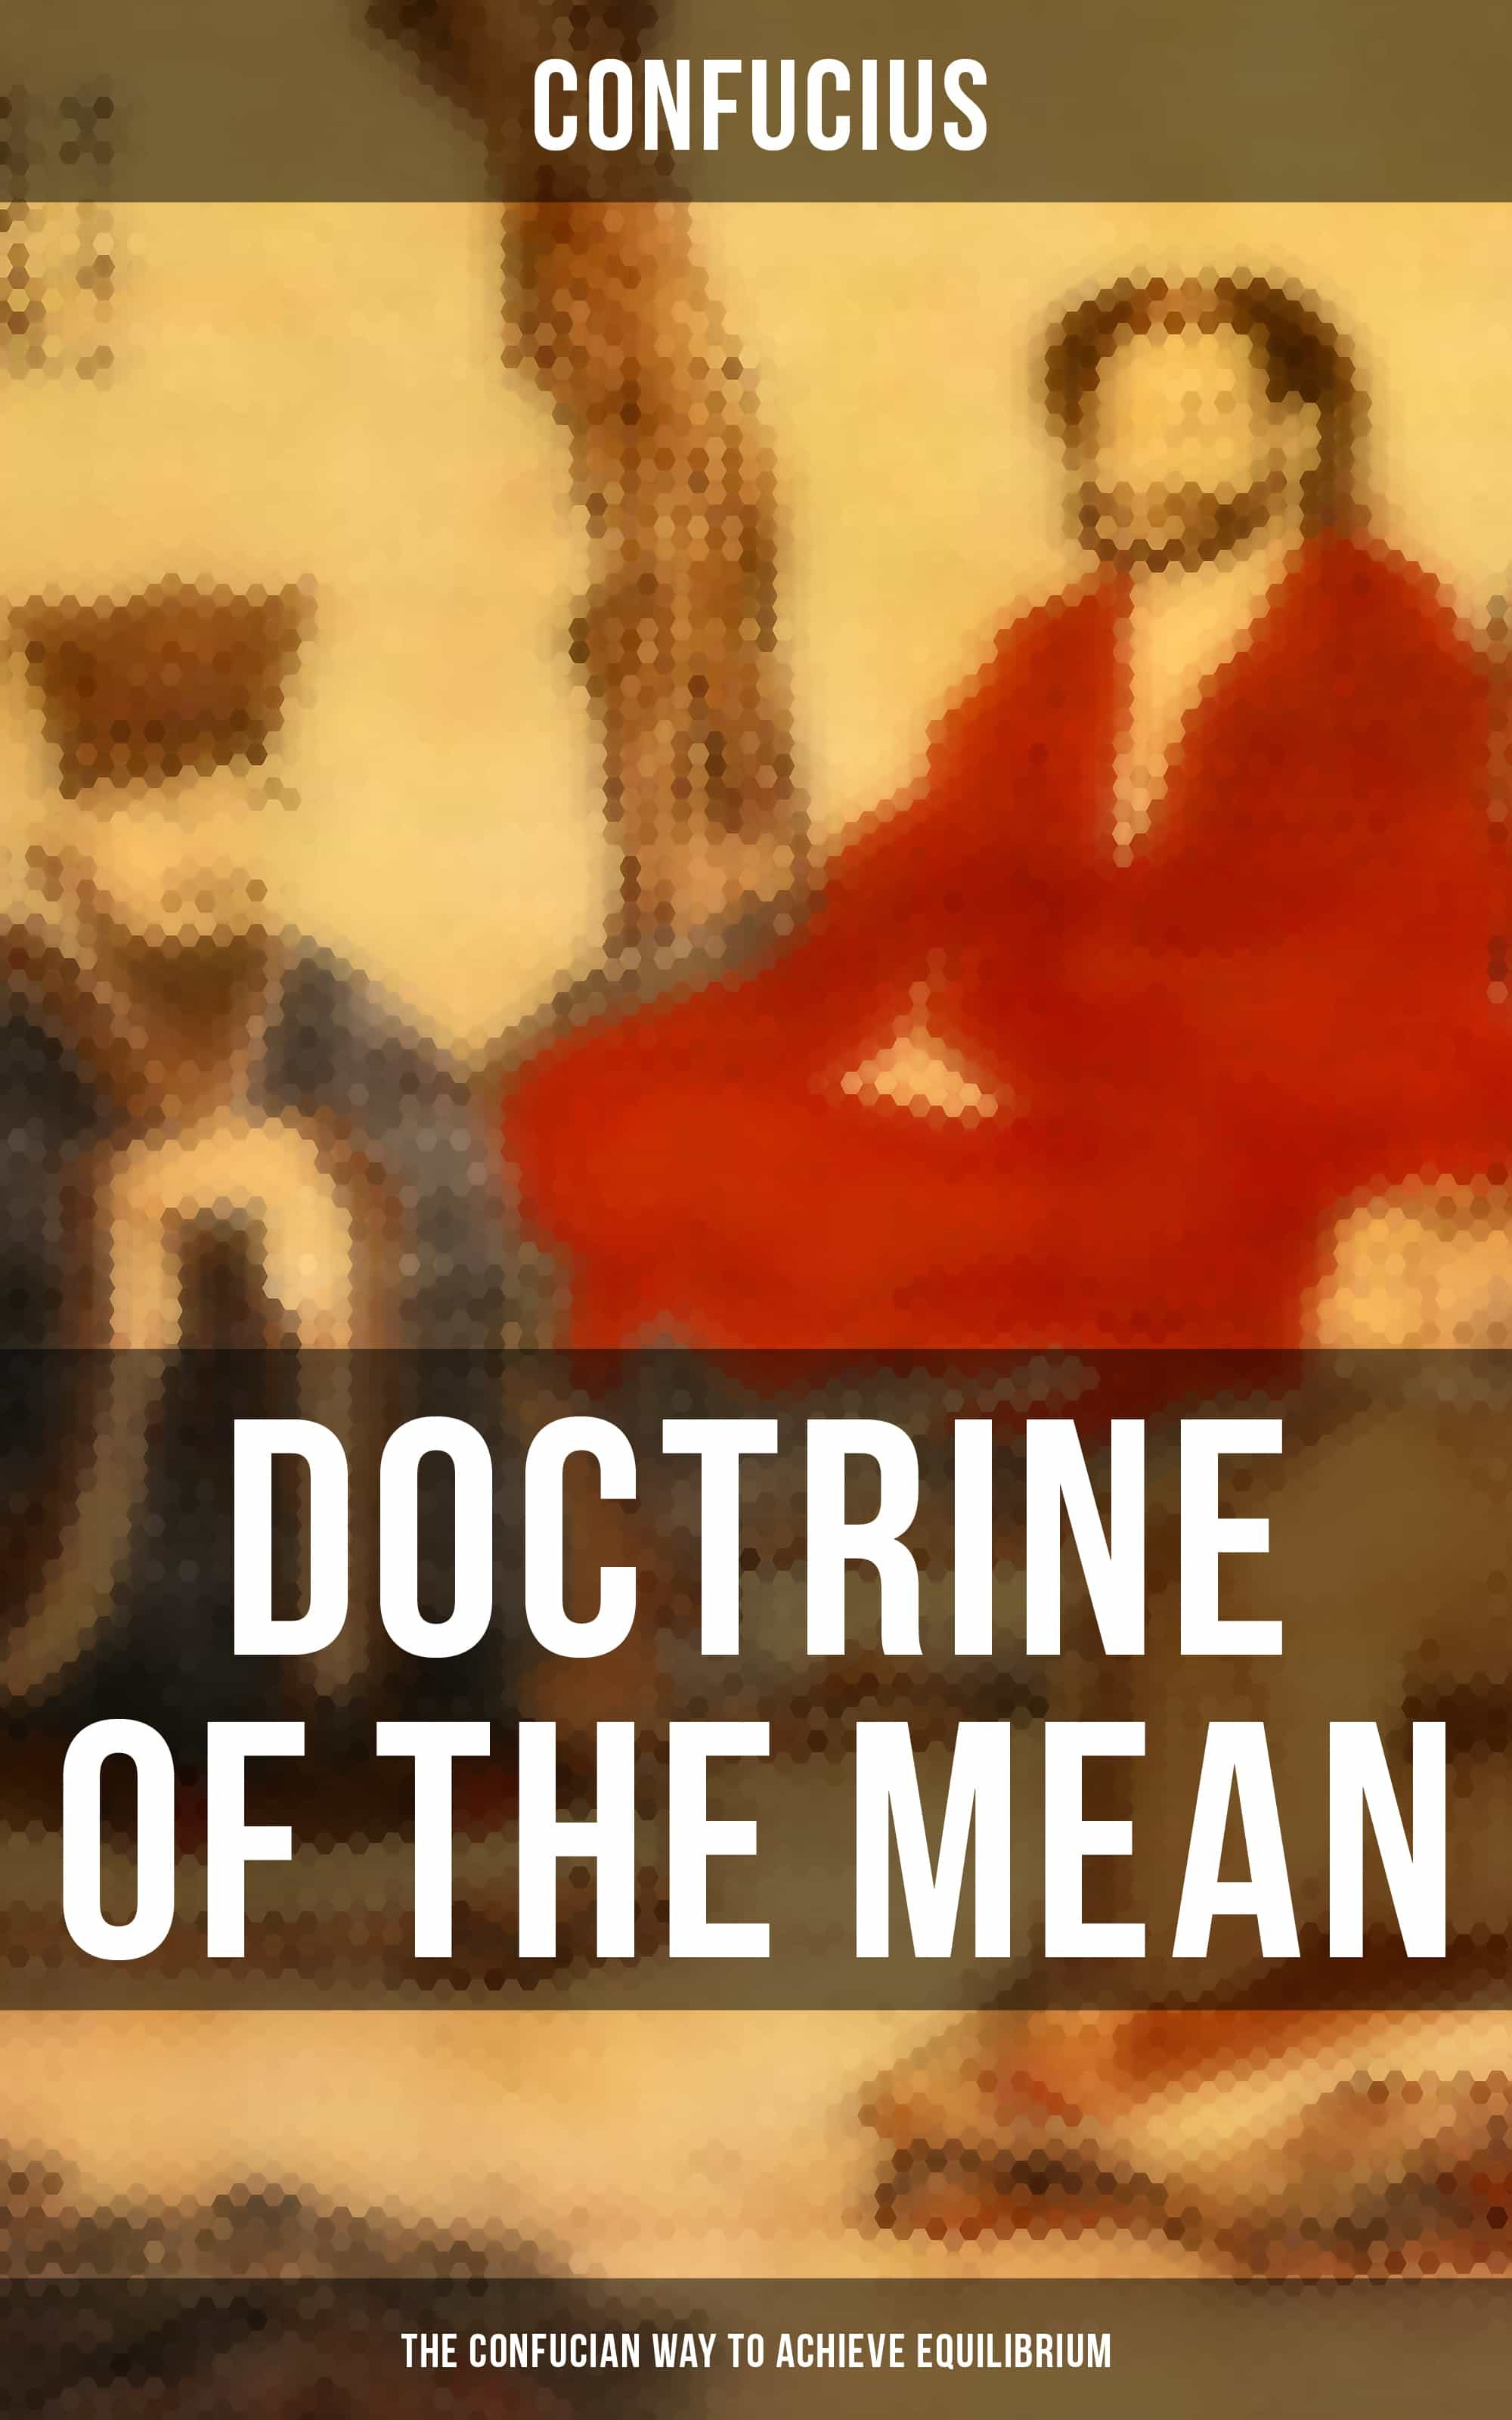 Libro Epub Gratis Doctrine Of The Mean (the Confucian Way To Achieve Equilibrium)